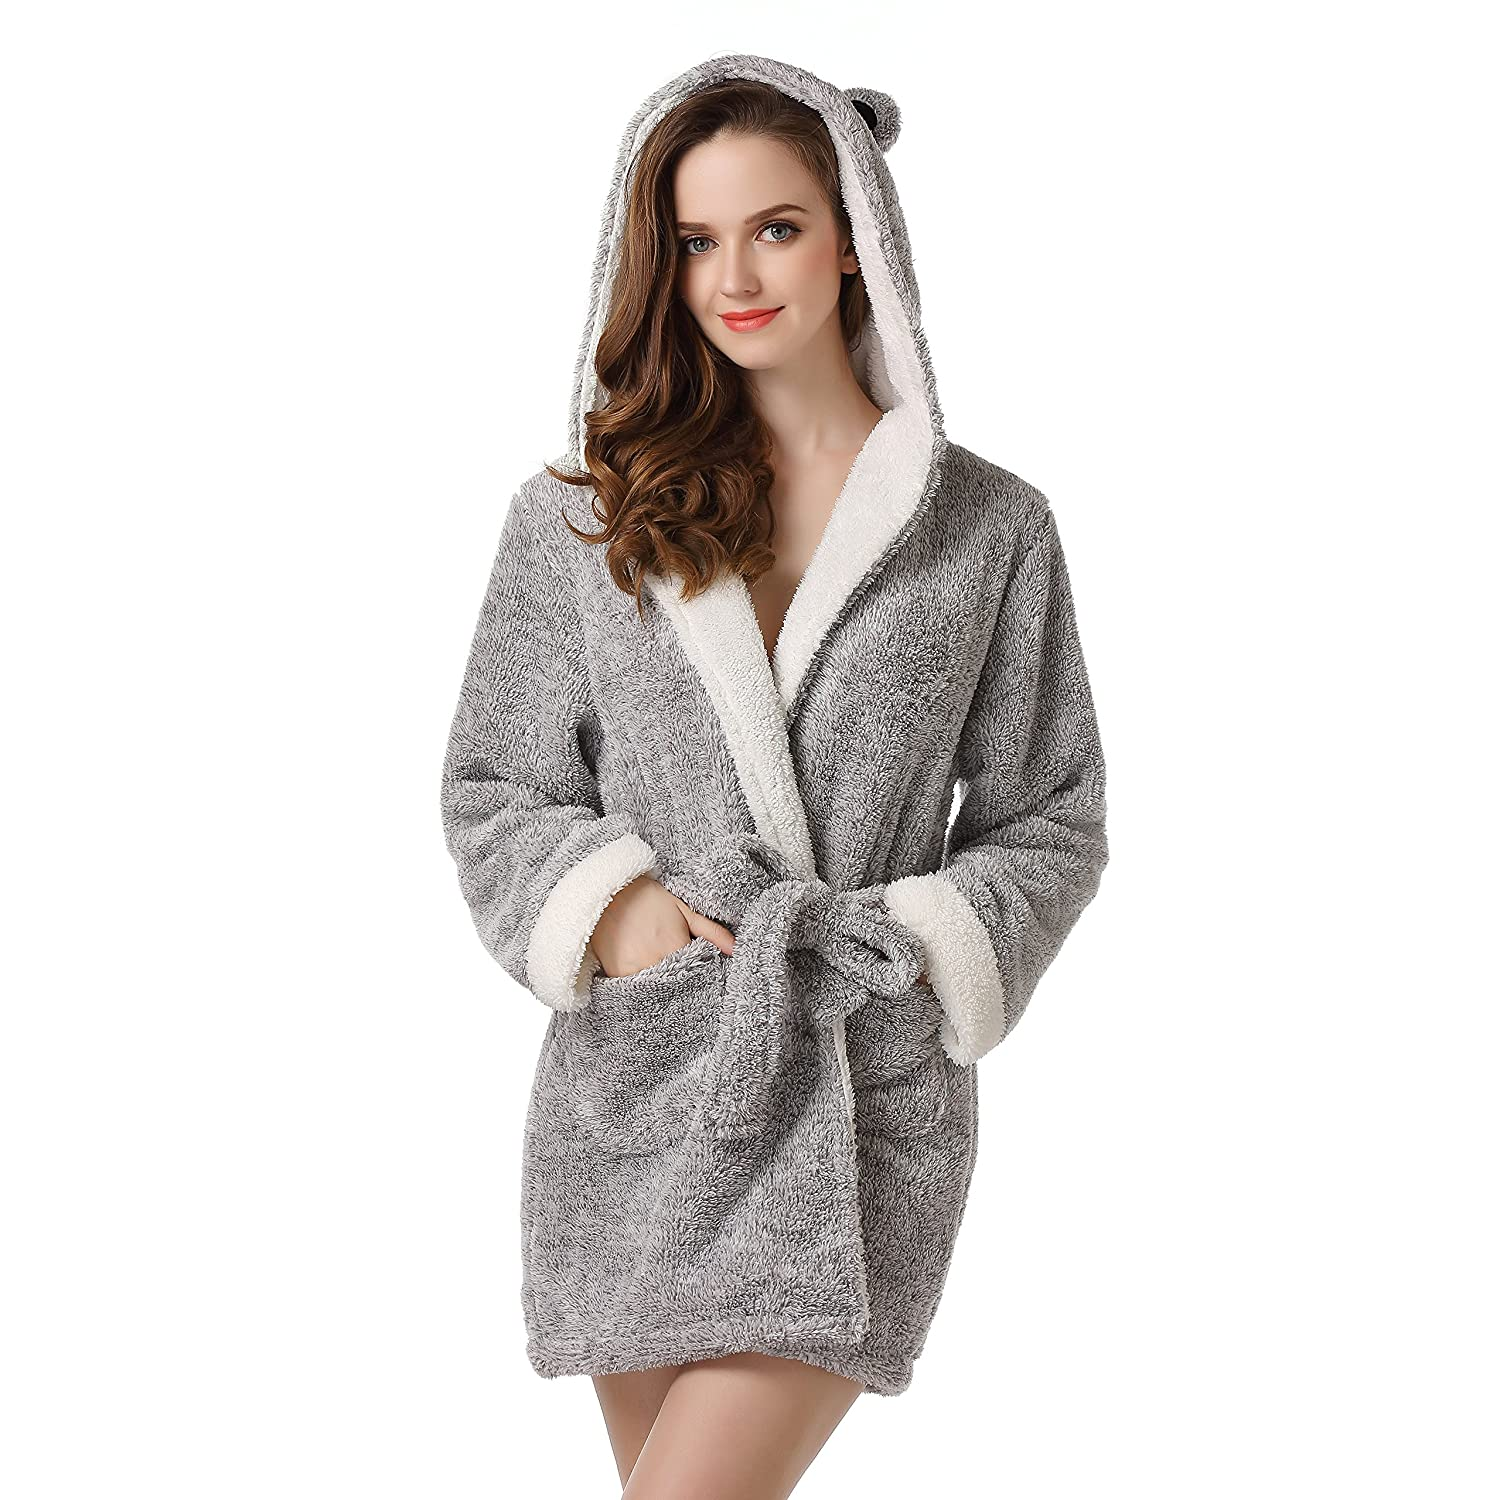 Top 10 Best Plush Bathrobes for Women Buying Guide 2019-2020 on ... 1dc0af5d8